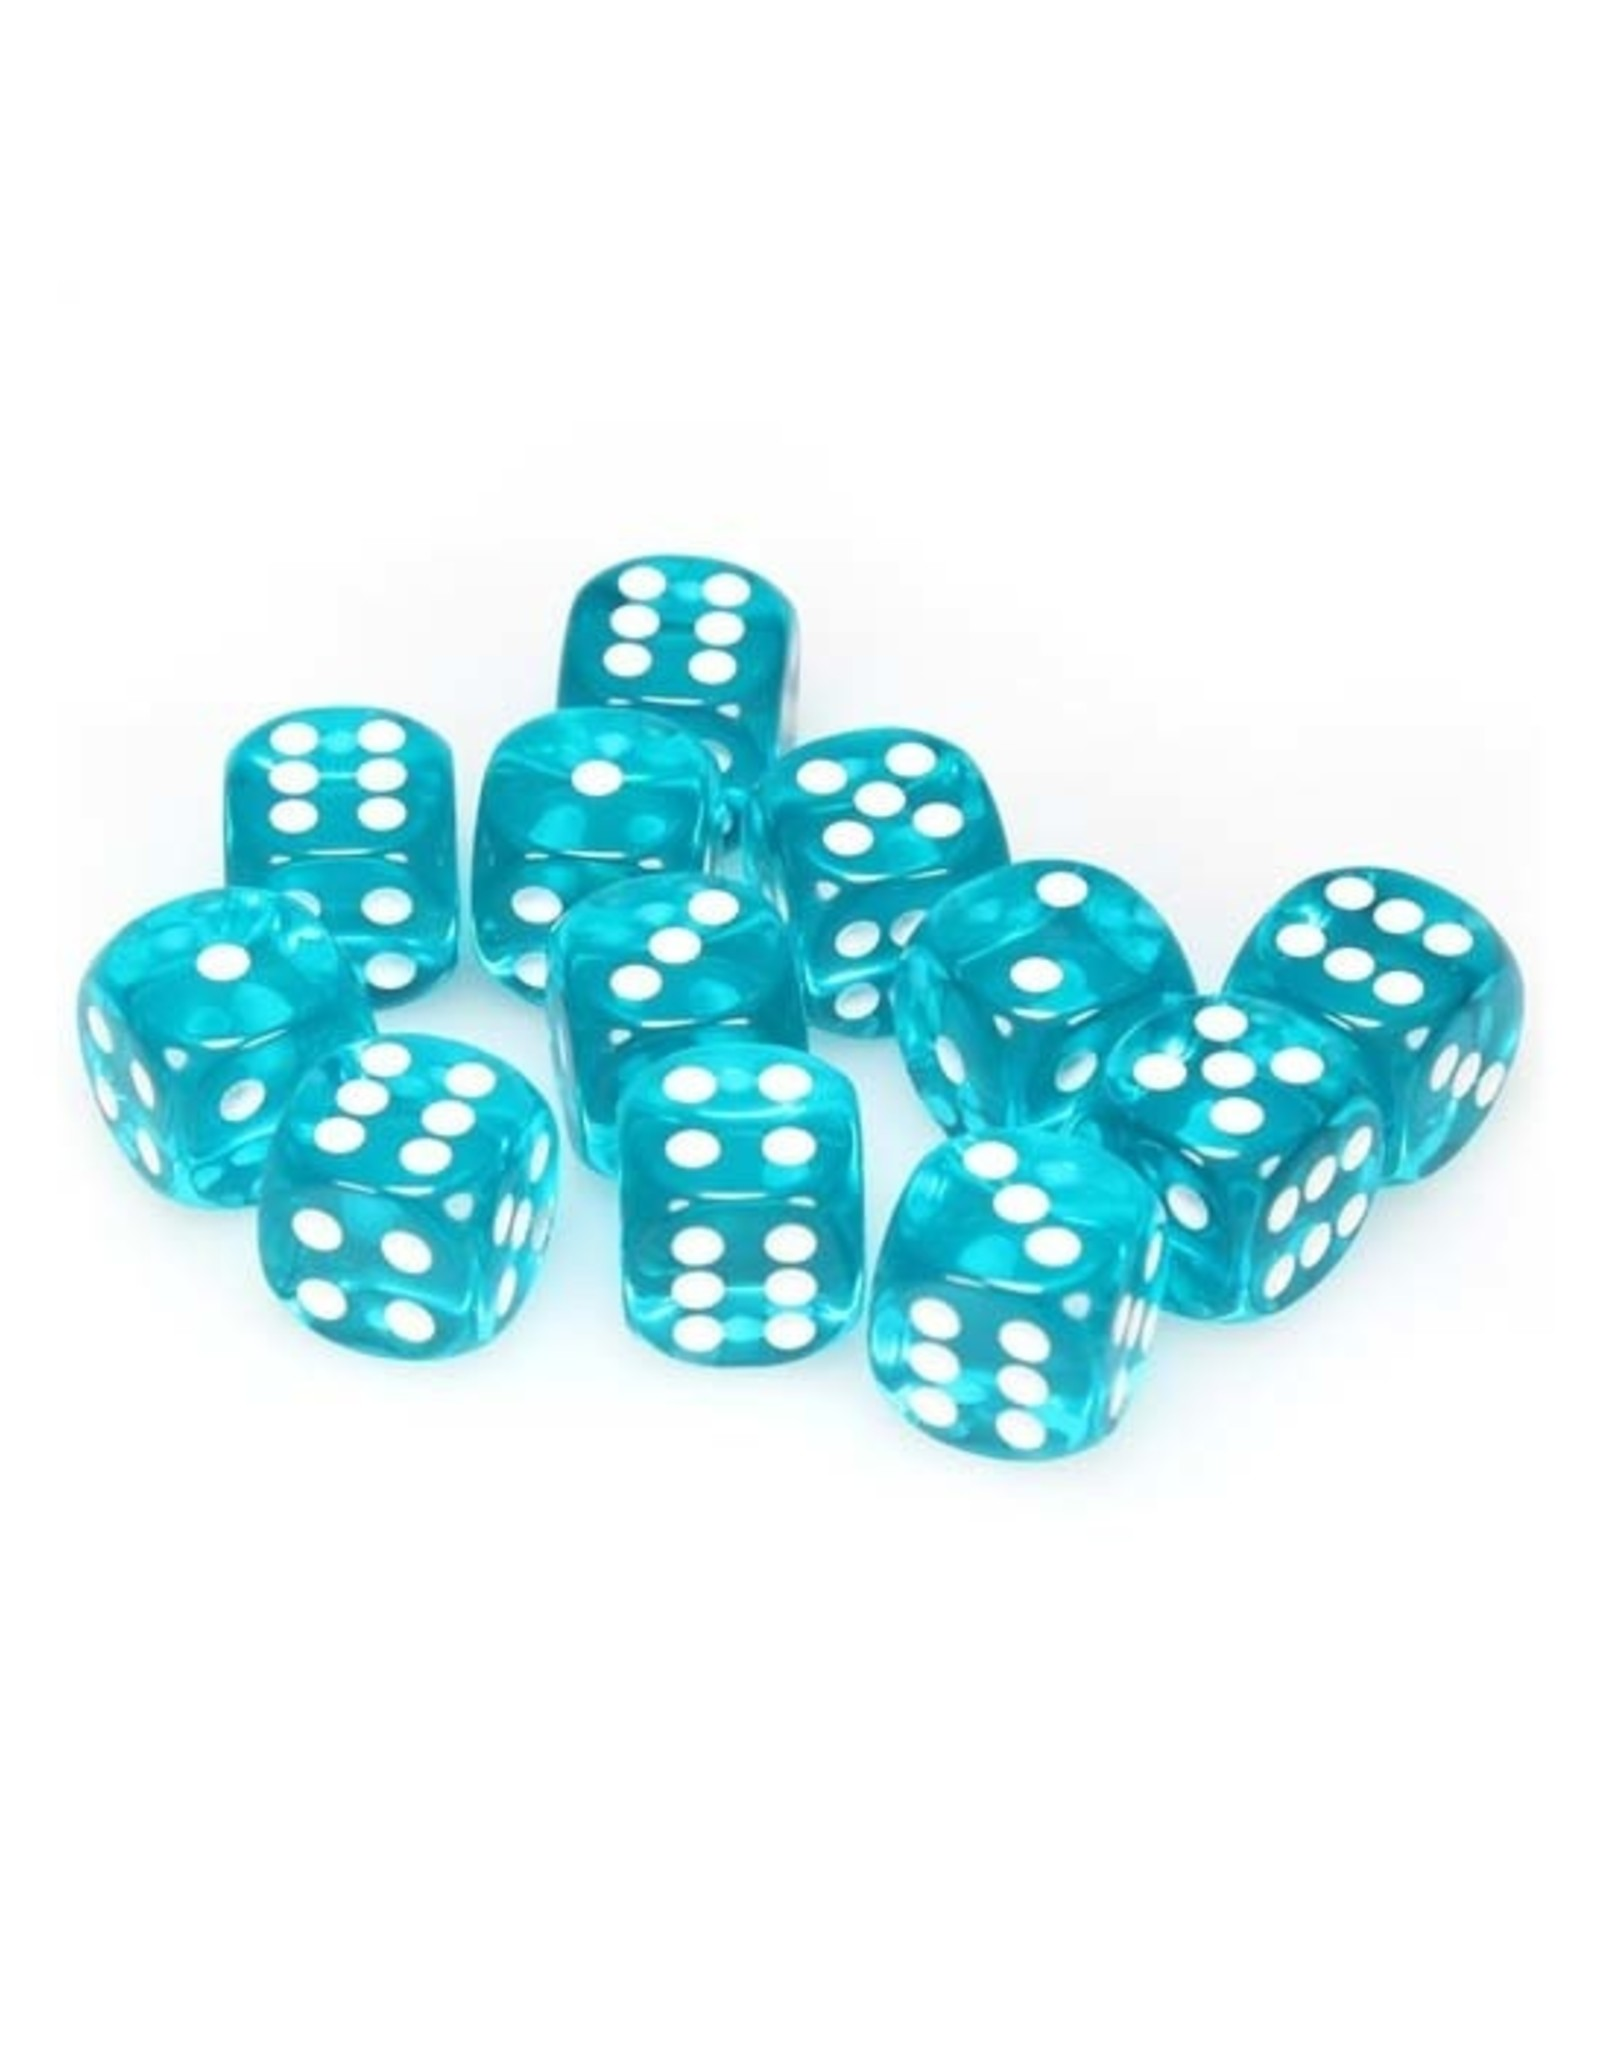 Chessex Chessex: 16mm D6 - Translucent - Teal w/ White